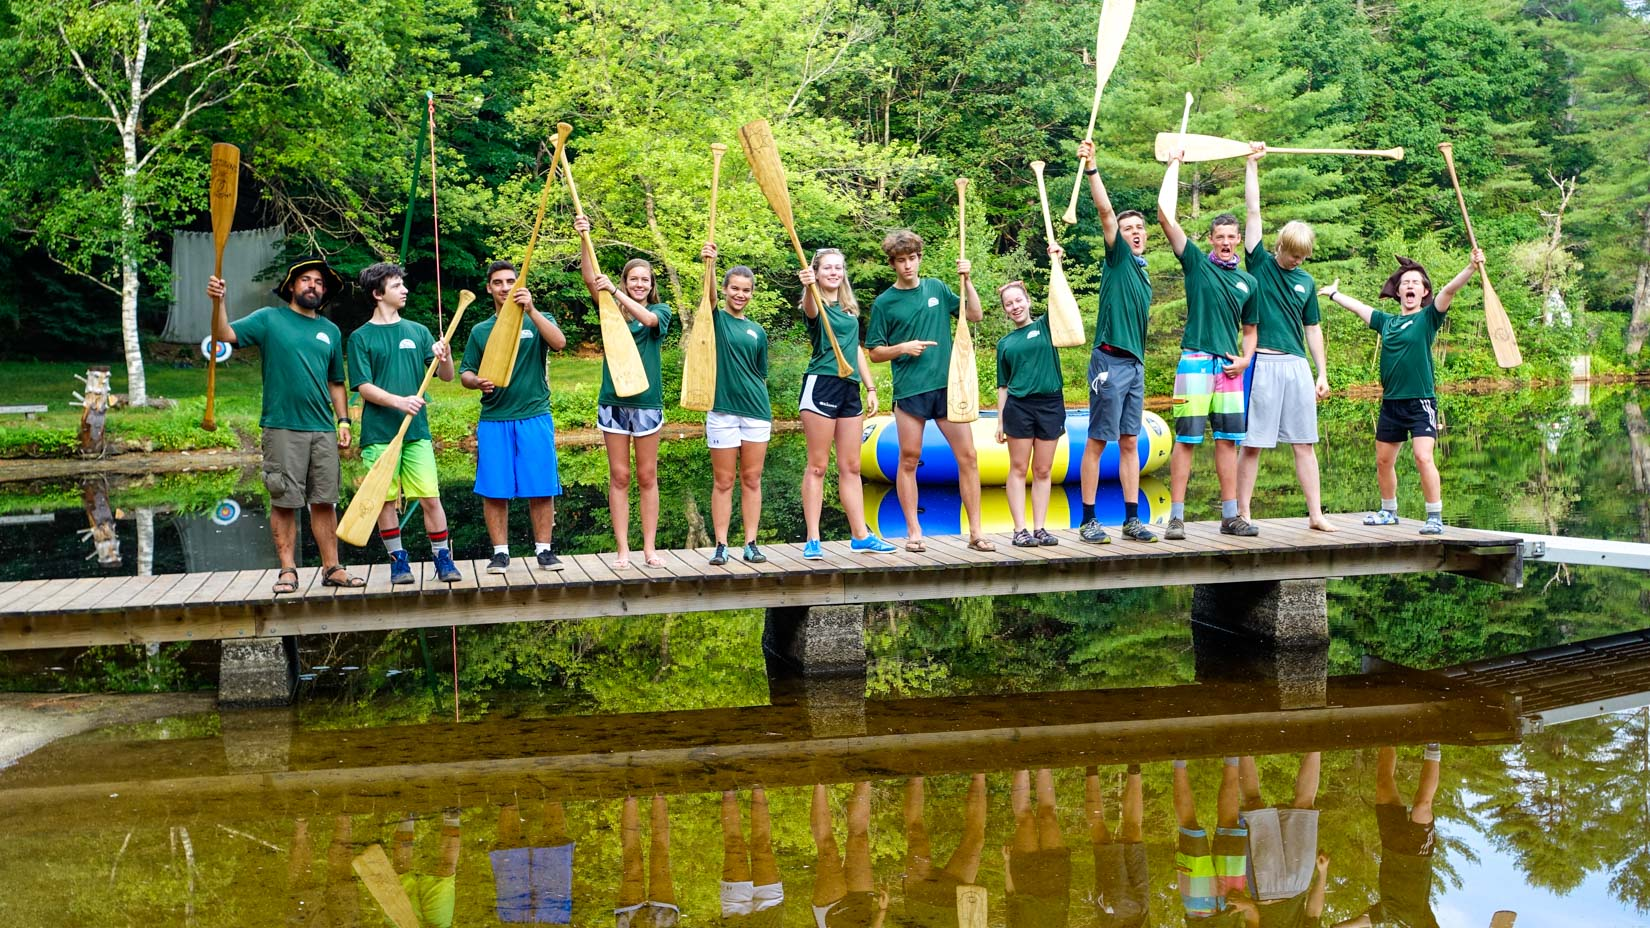 Campers on a bridge with paddles